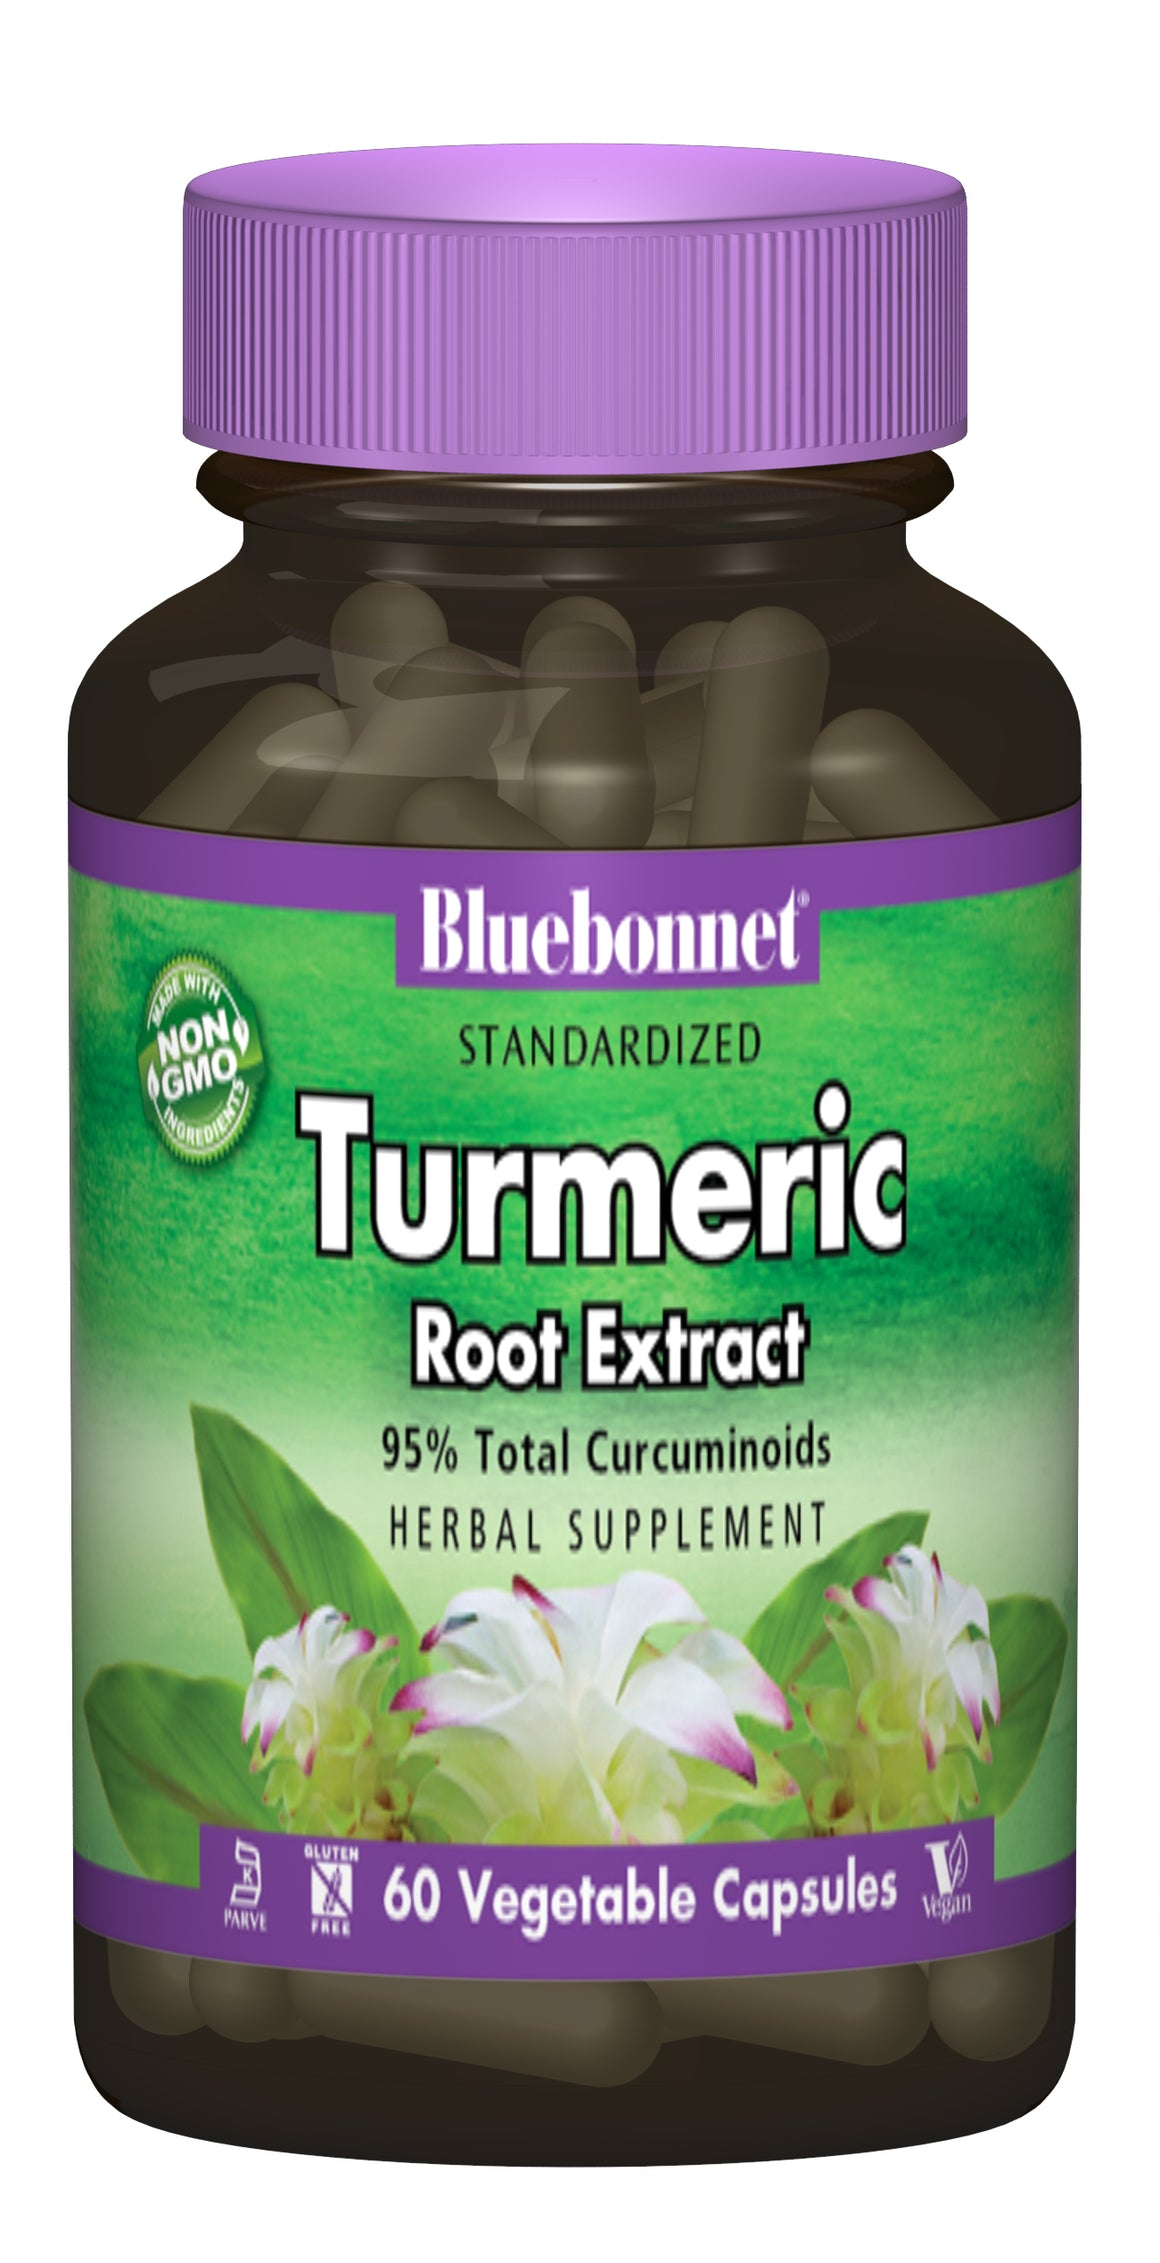 A bottle of Bluebonnet Turmeric Root Extract